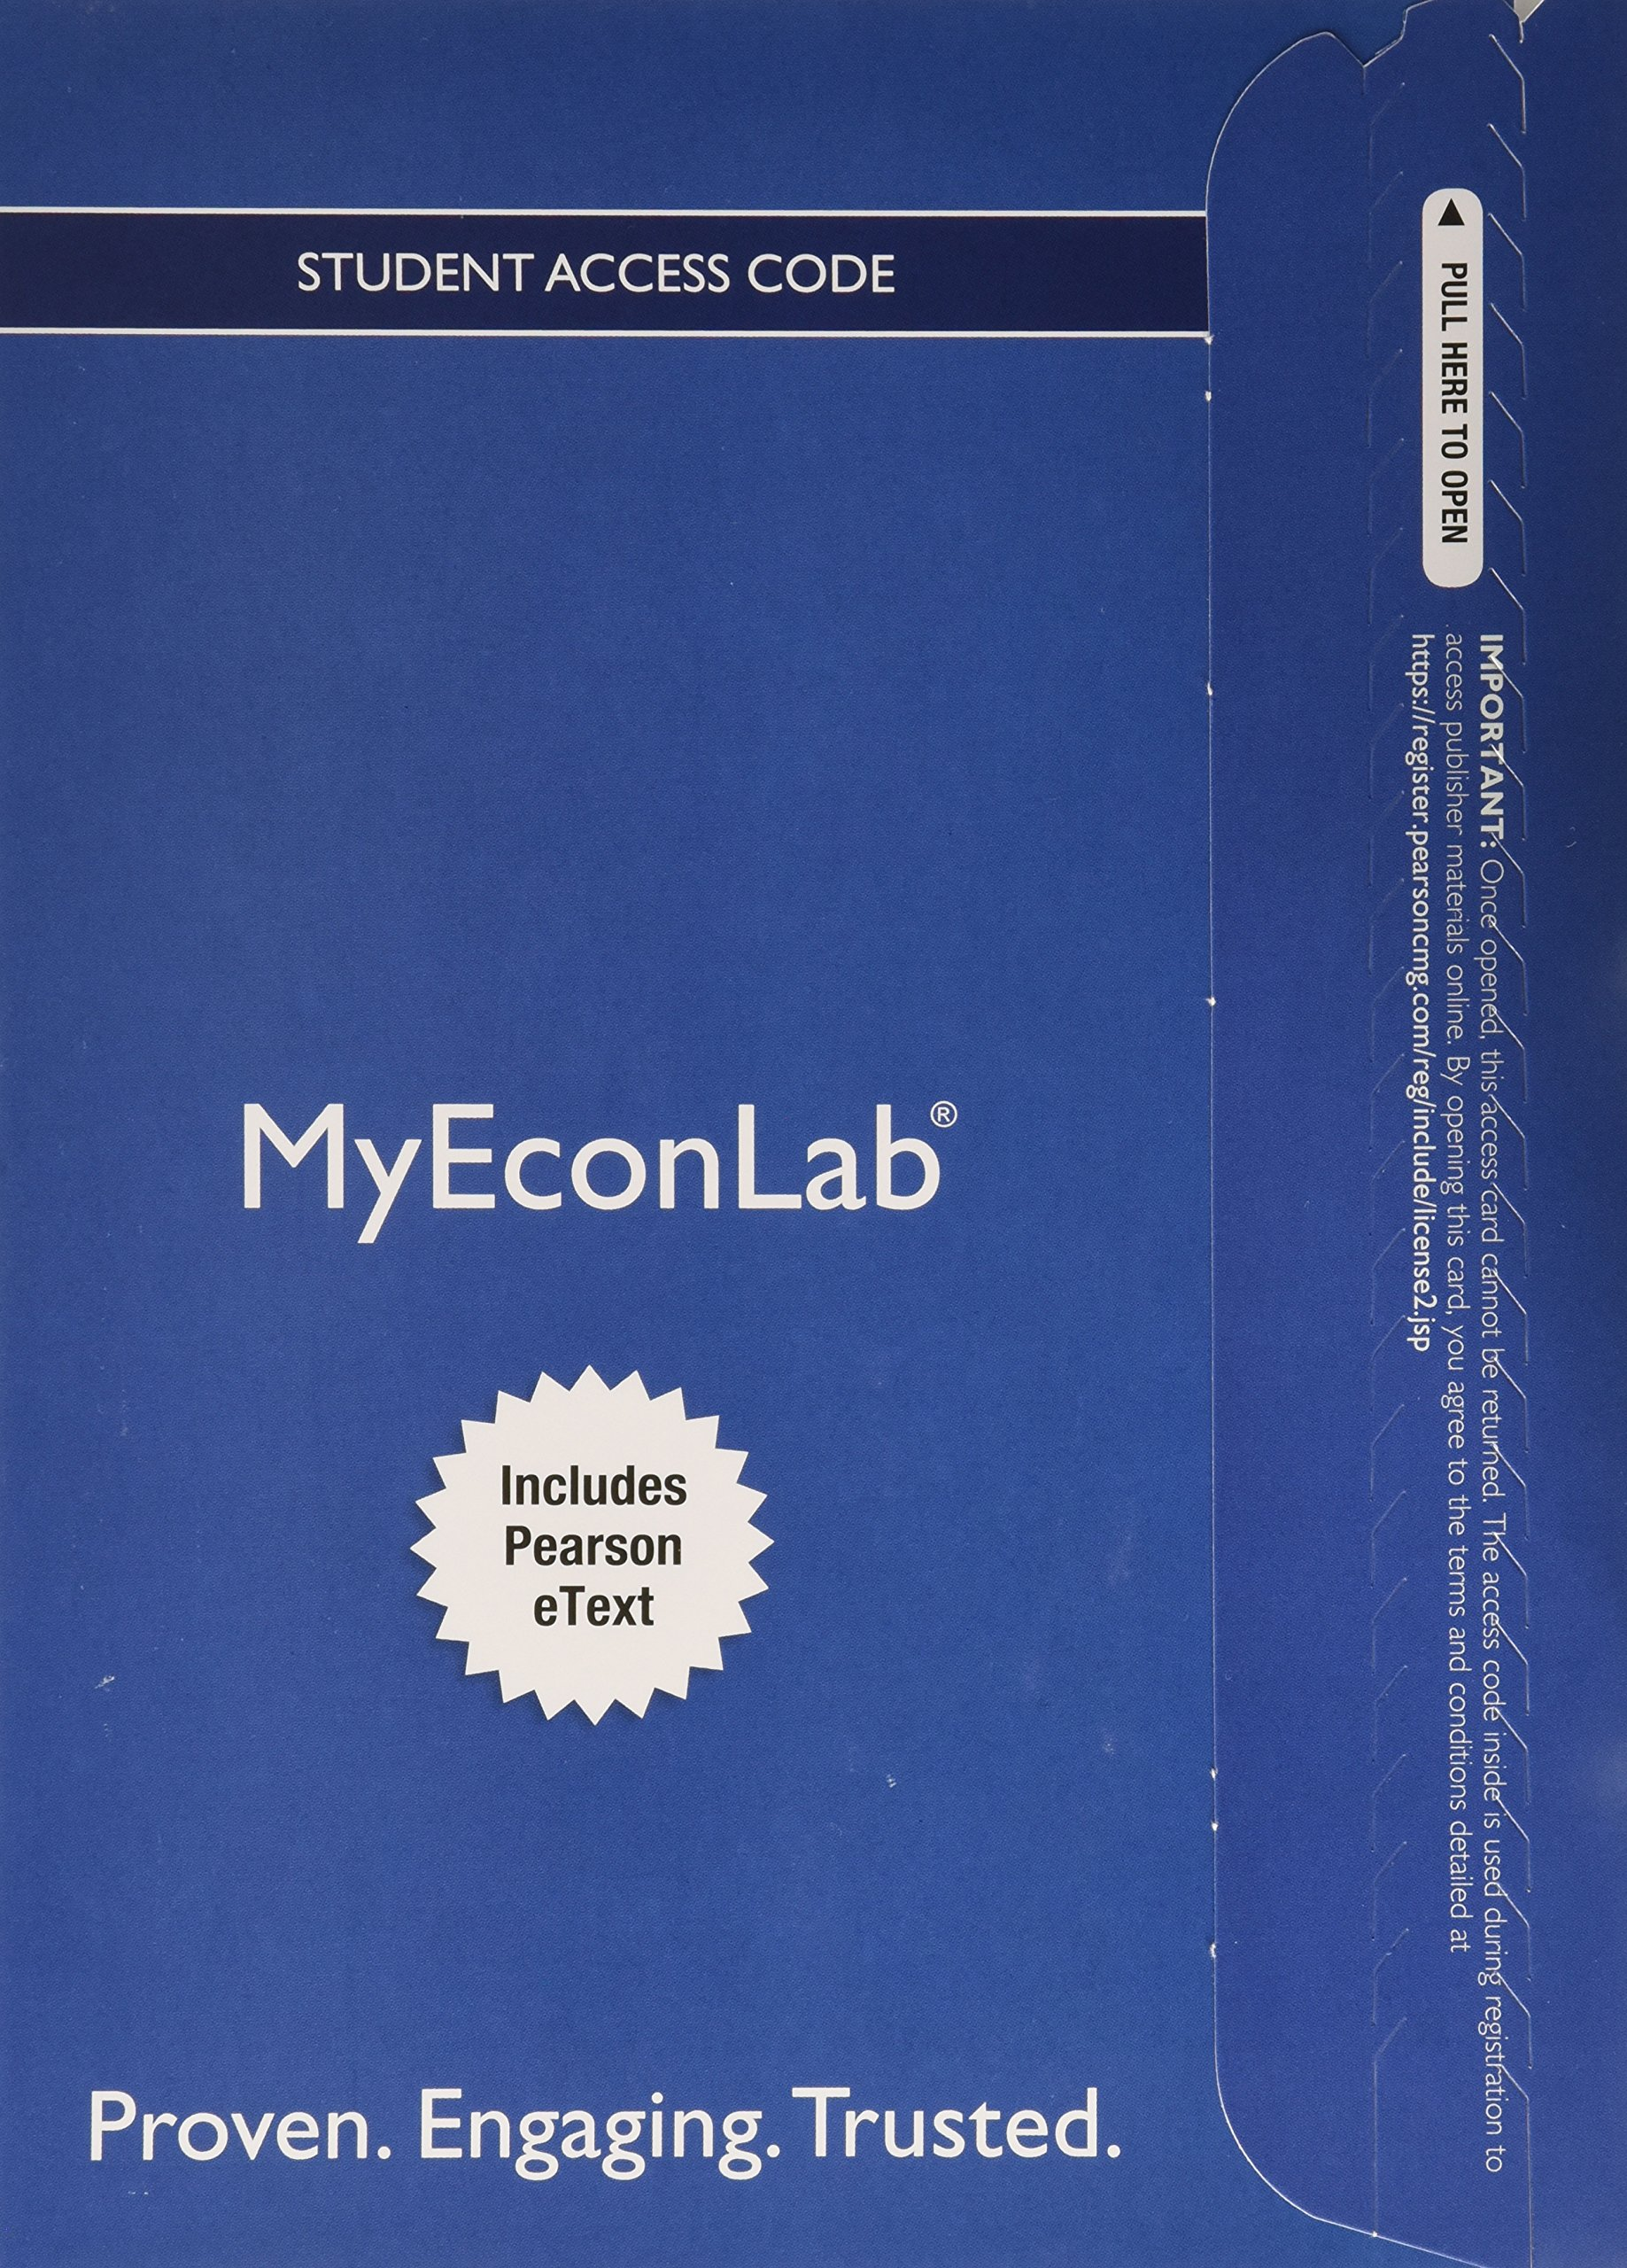 Check Out MyeconlabProducts On Amazon!